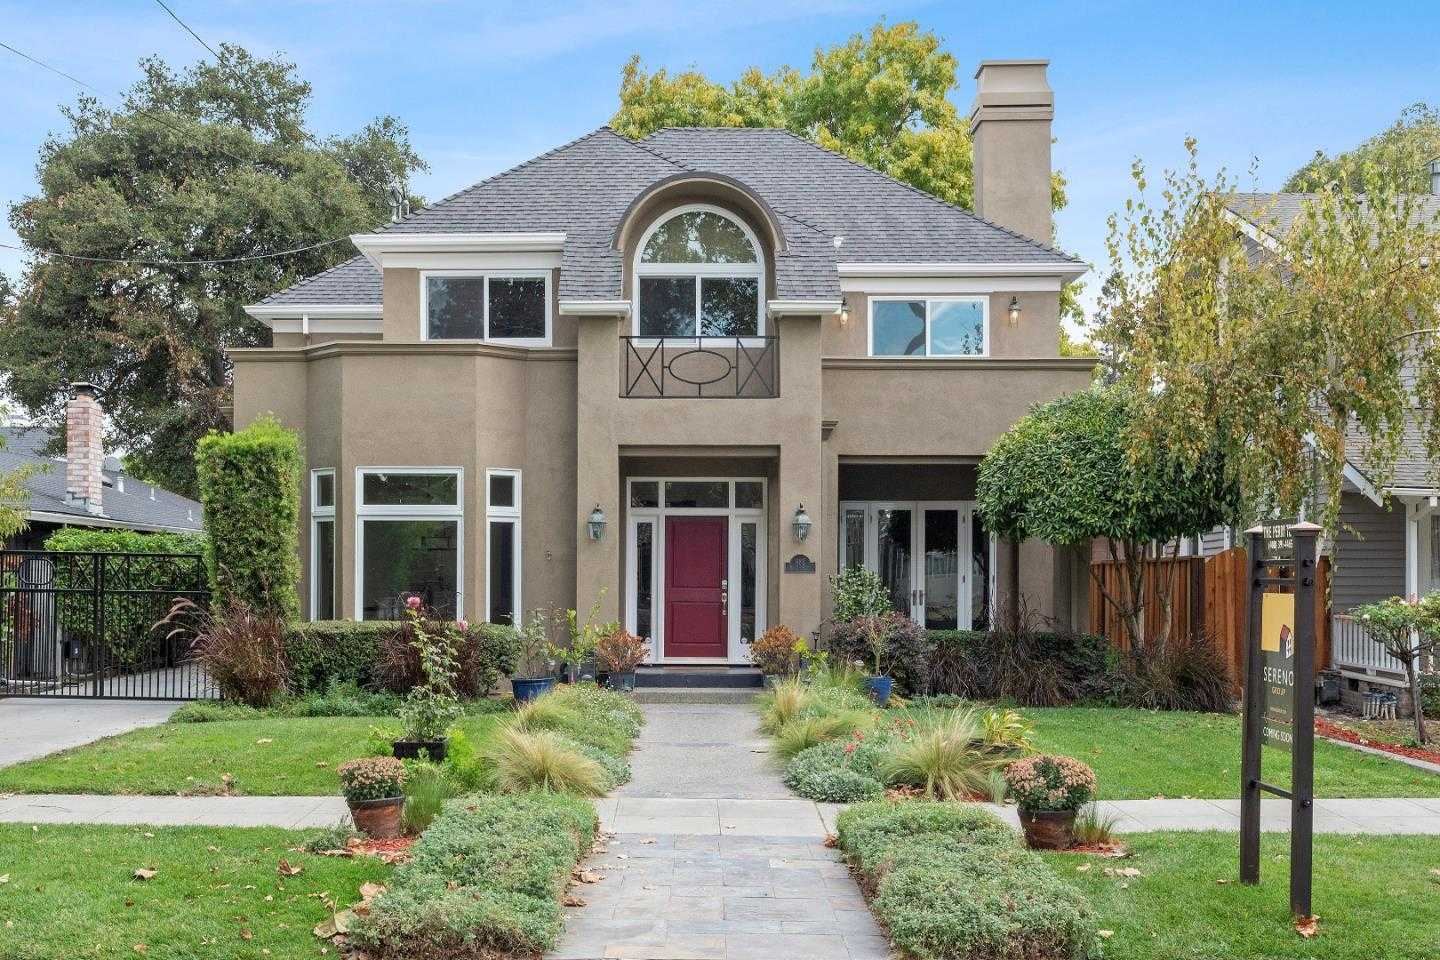 $2,395,000 - 5Br/4Ba -  for Sale in San Jose